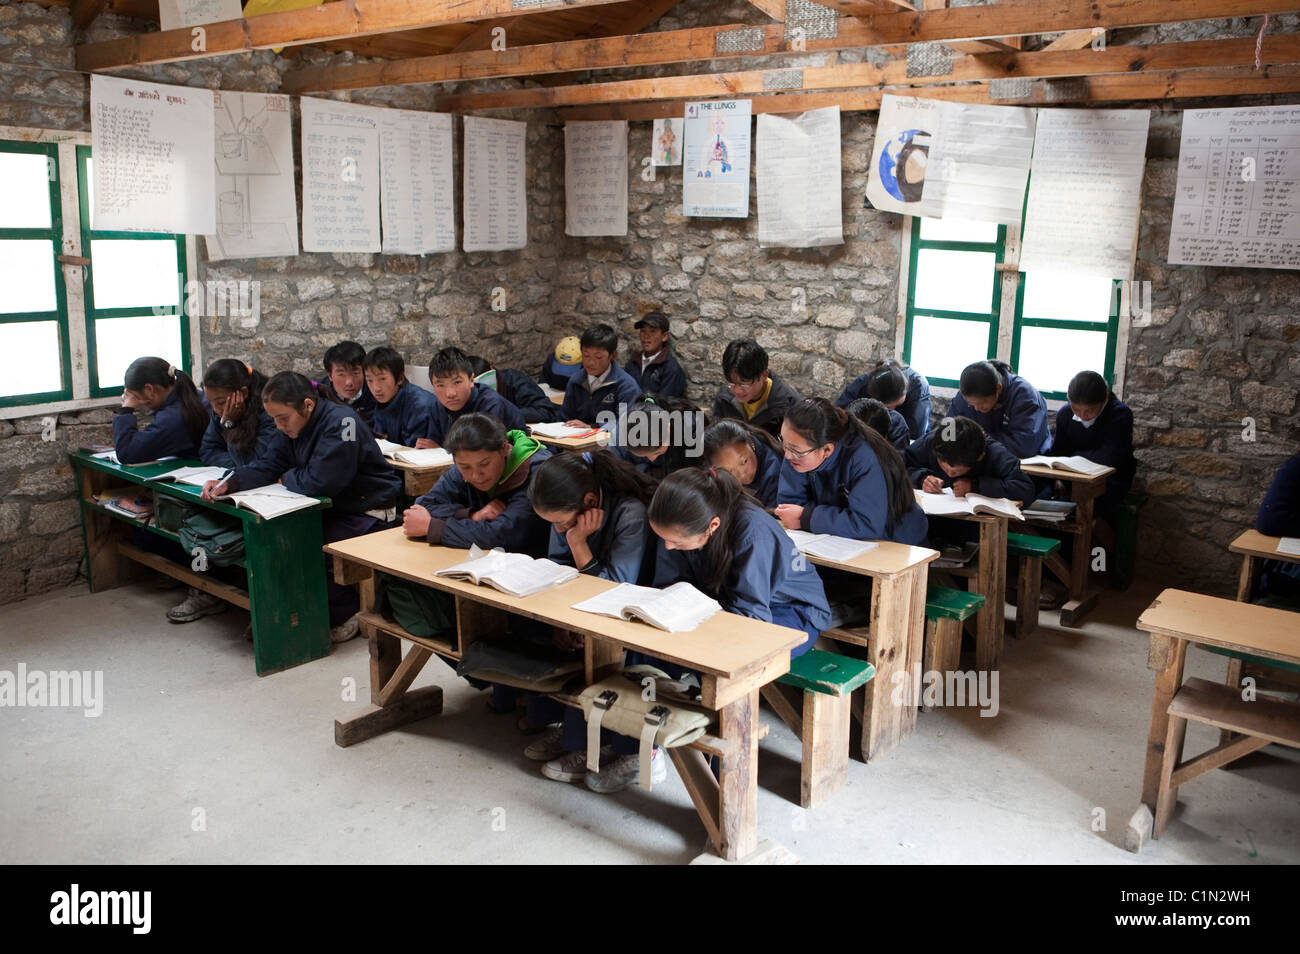 Classoom of schoolchildren in Khumjung in the Khumbu region of the Himalayas in Nepal Stock Photo